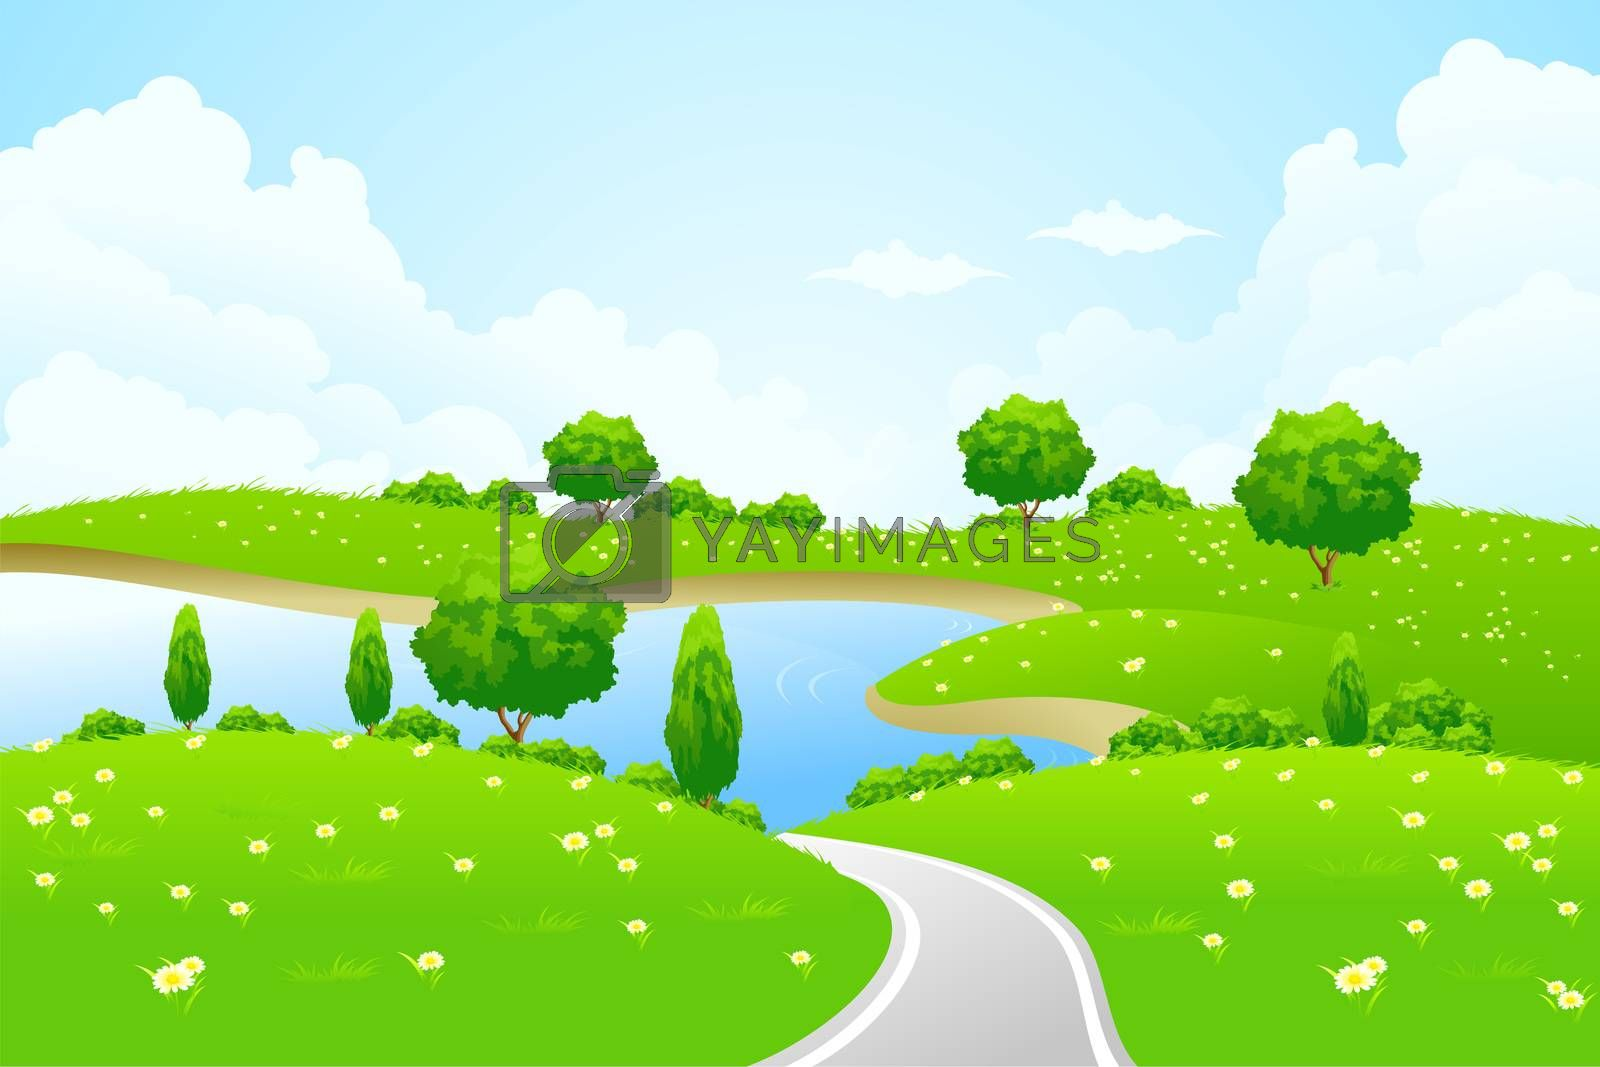 Green Landscape with lake tree road and flowers by WaD